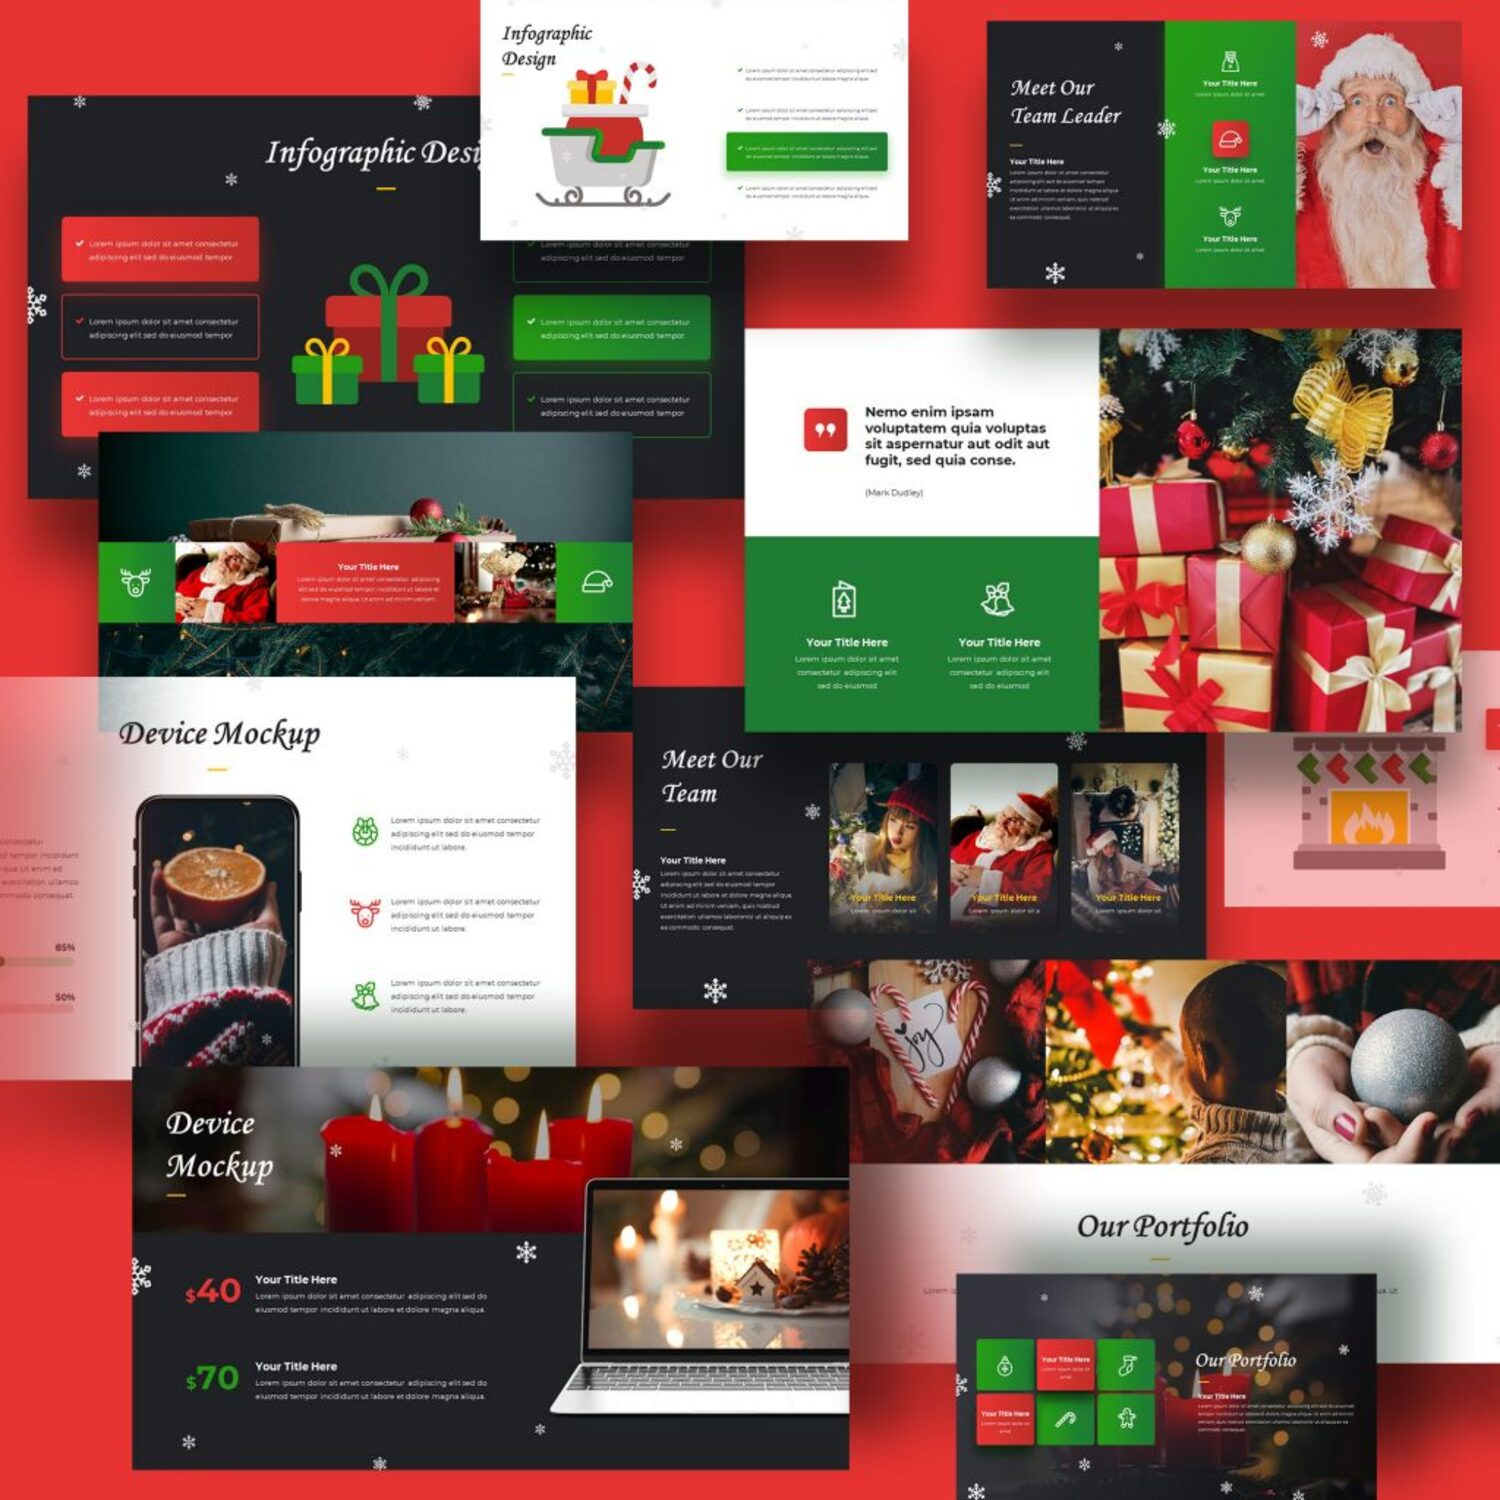 Merry Christmas Powerpoint Presentation Template cover image.